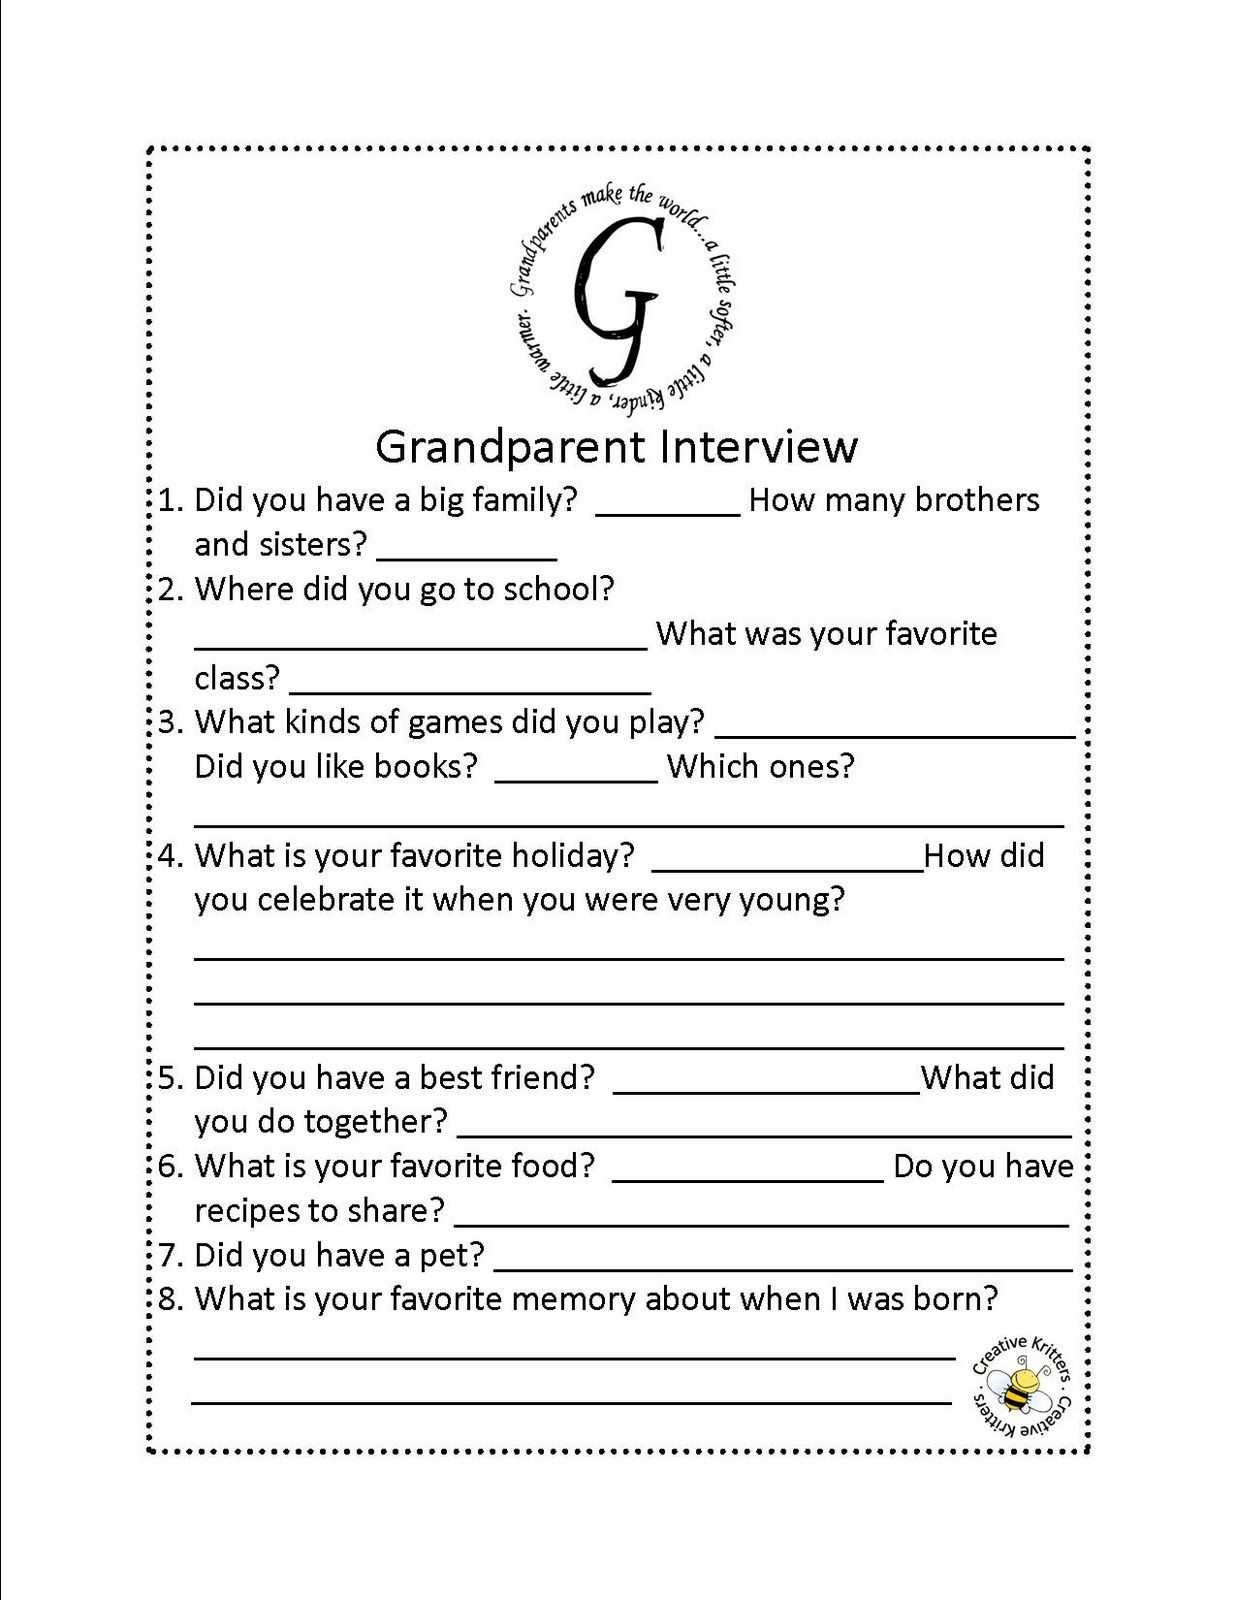 What Do Your Kids Call Their Grandparents And What Do You Call Yours images